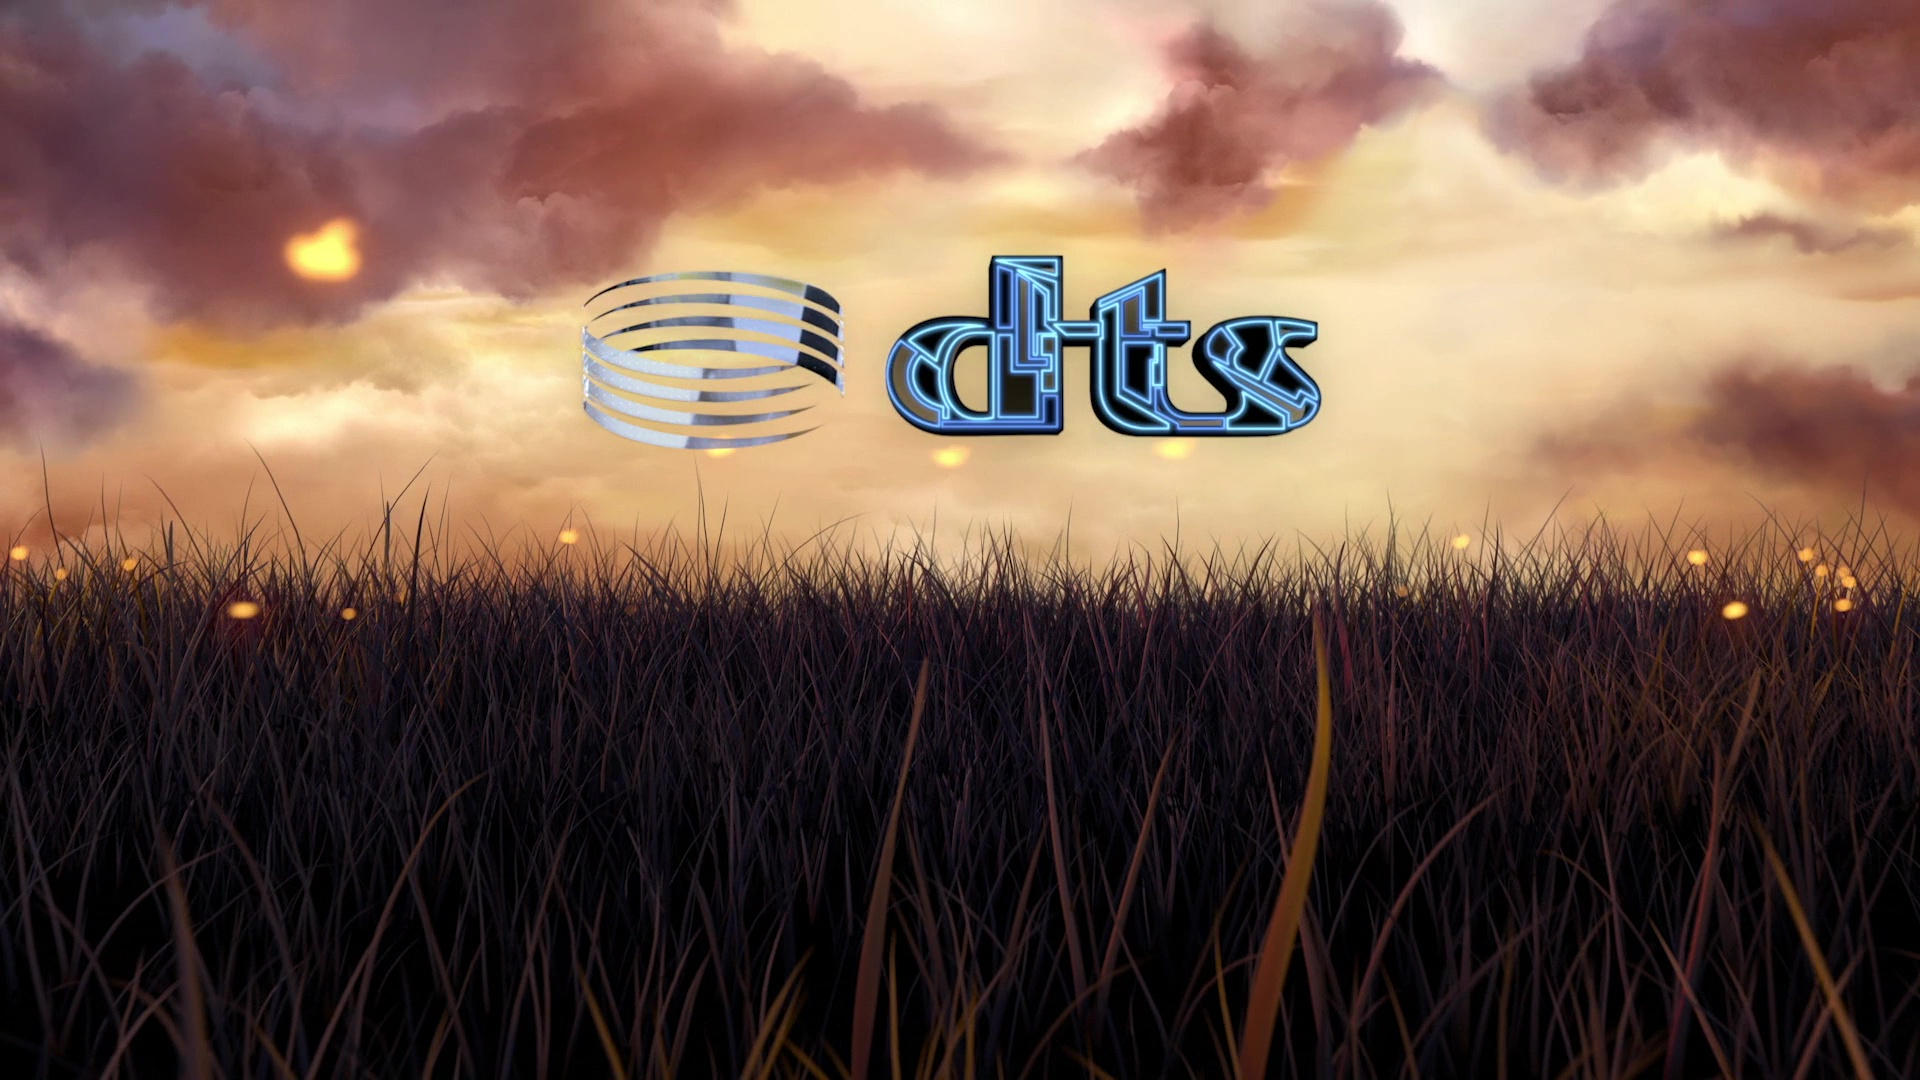 DTS-HD Master Audio Pack (HD) - Audio Format Bumpers - CinemaVision